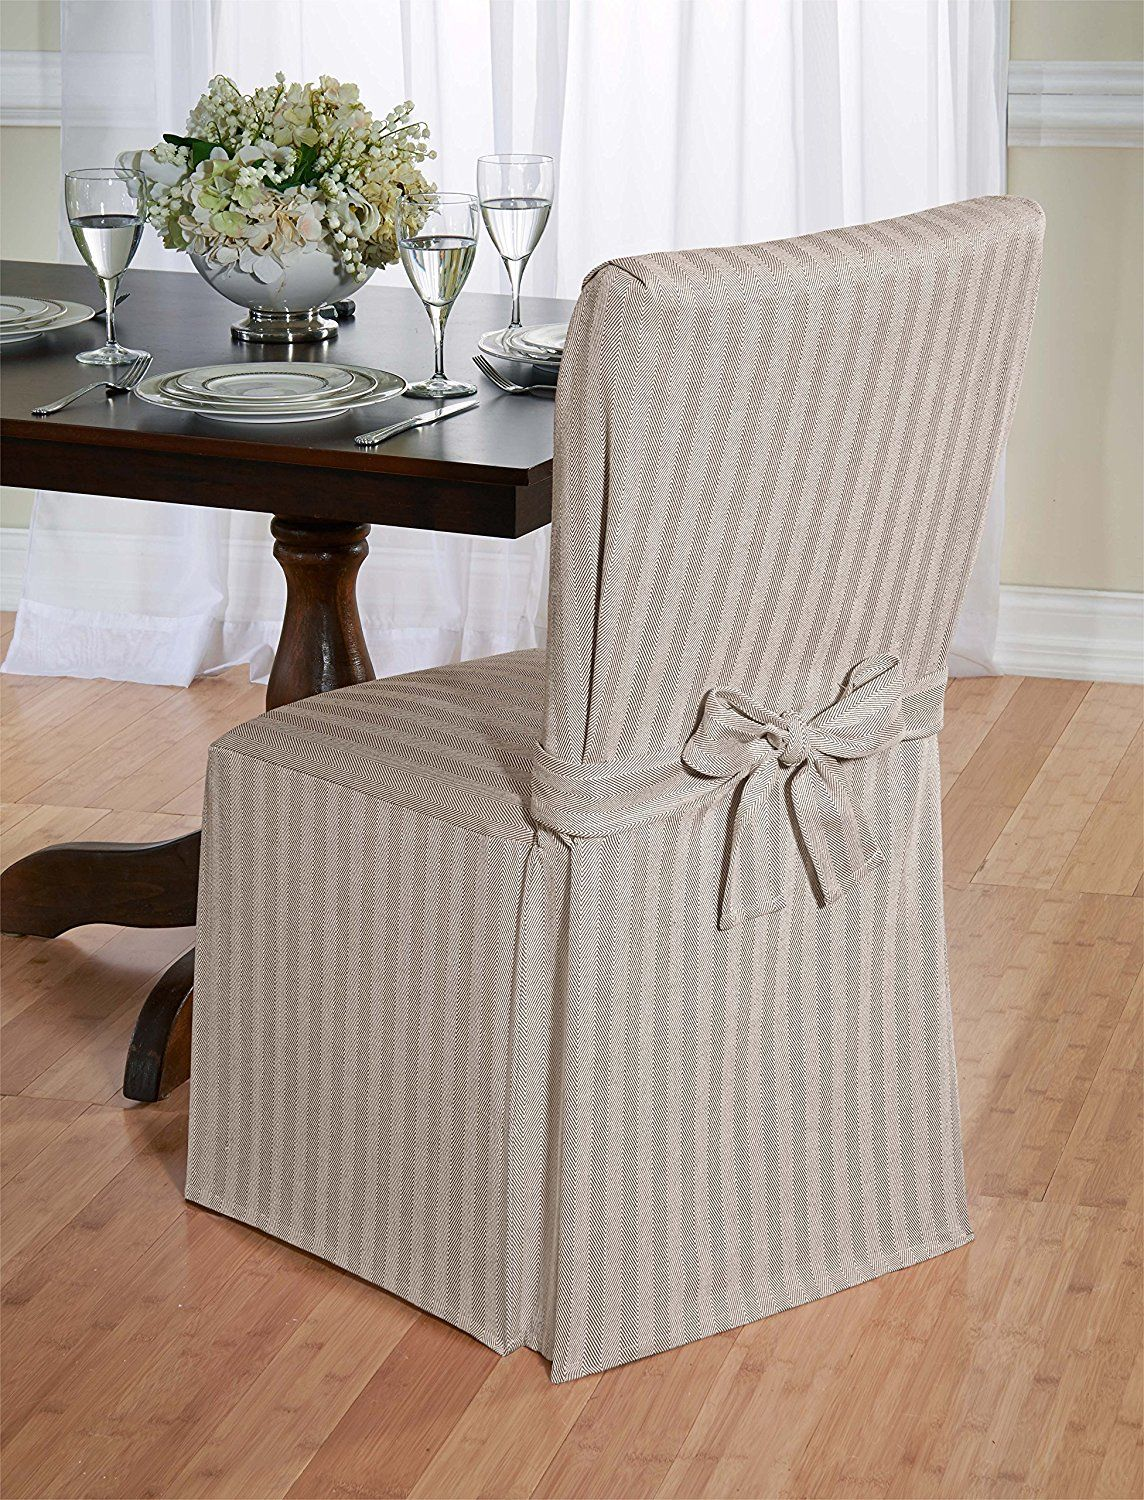 I just love these Dining Room Chair Covers. Change your